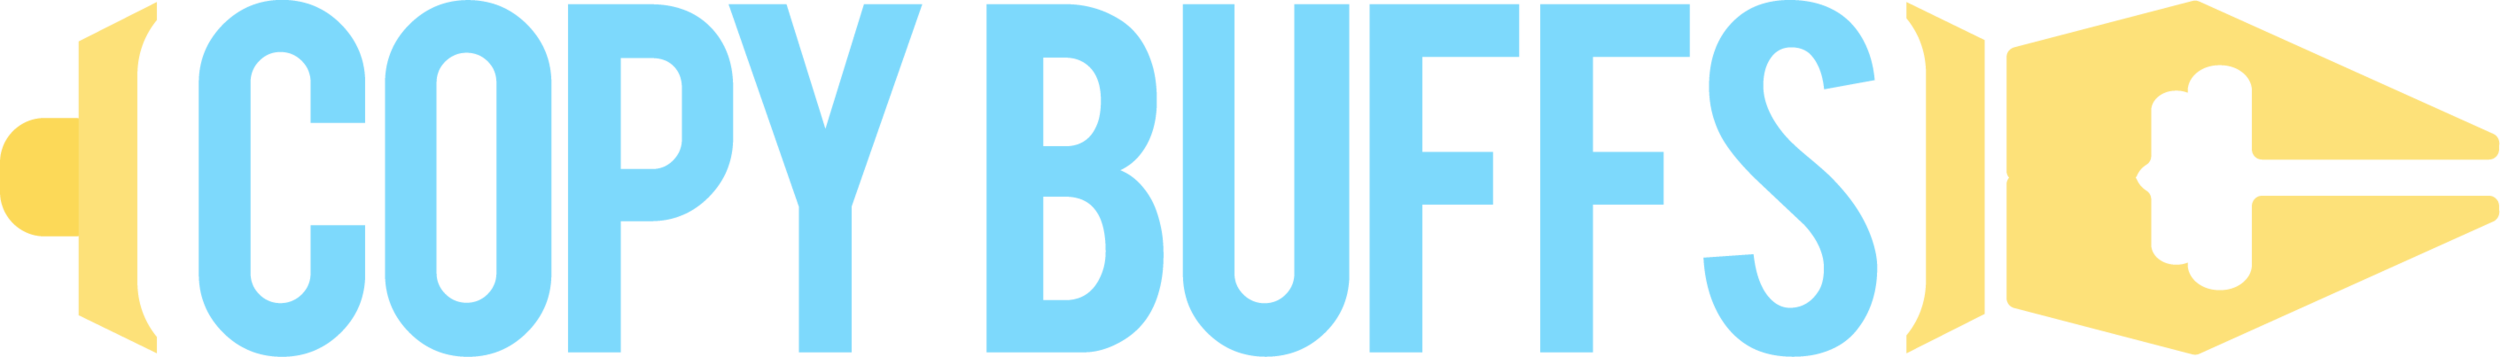 Copy Buffs Updated Logo.png